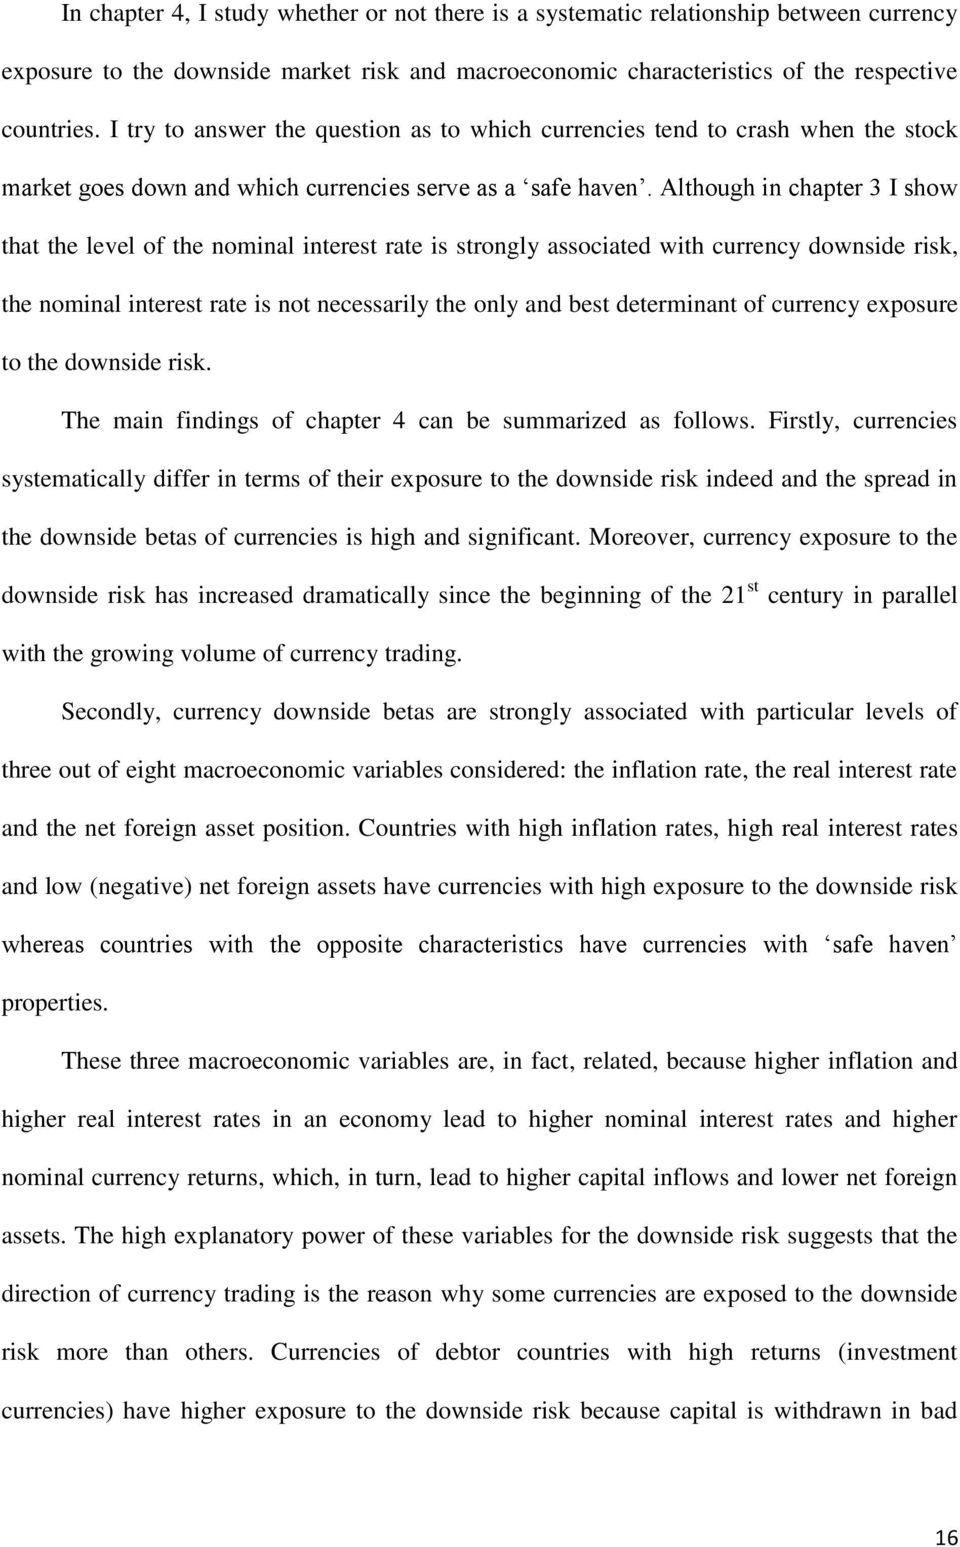 Although in chapter 3 I show that the level of the nominal interest rate is strongly associated with currency downside risk, the nominal interest rate is not necessarily the only and best determinant